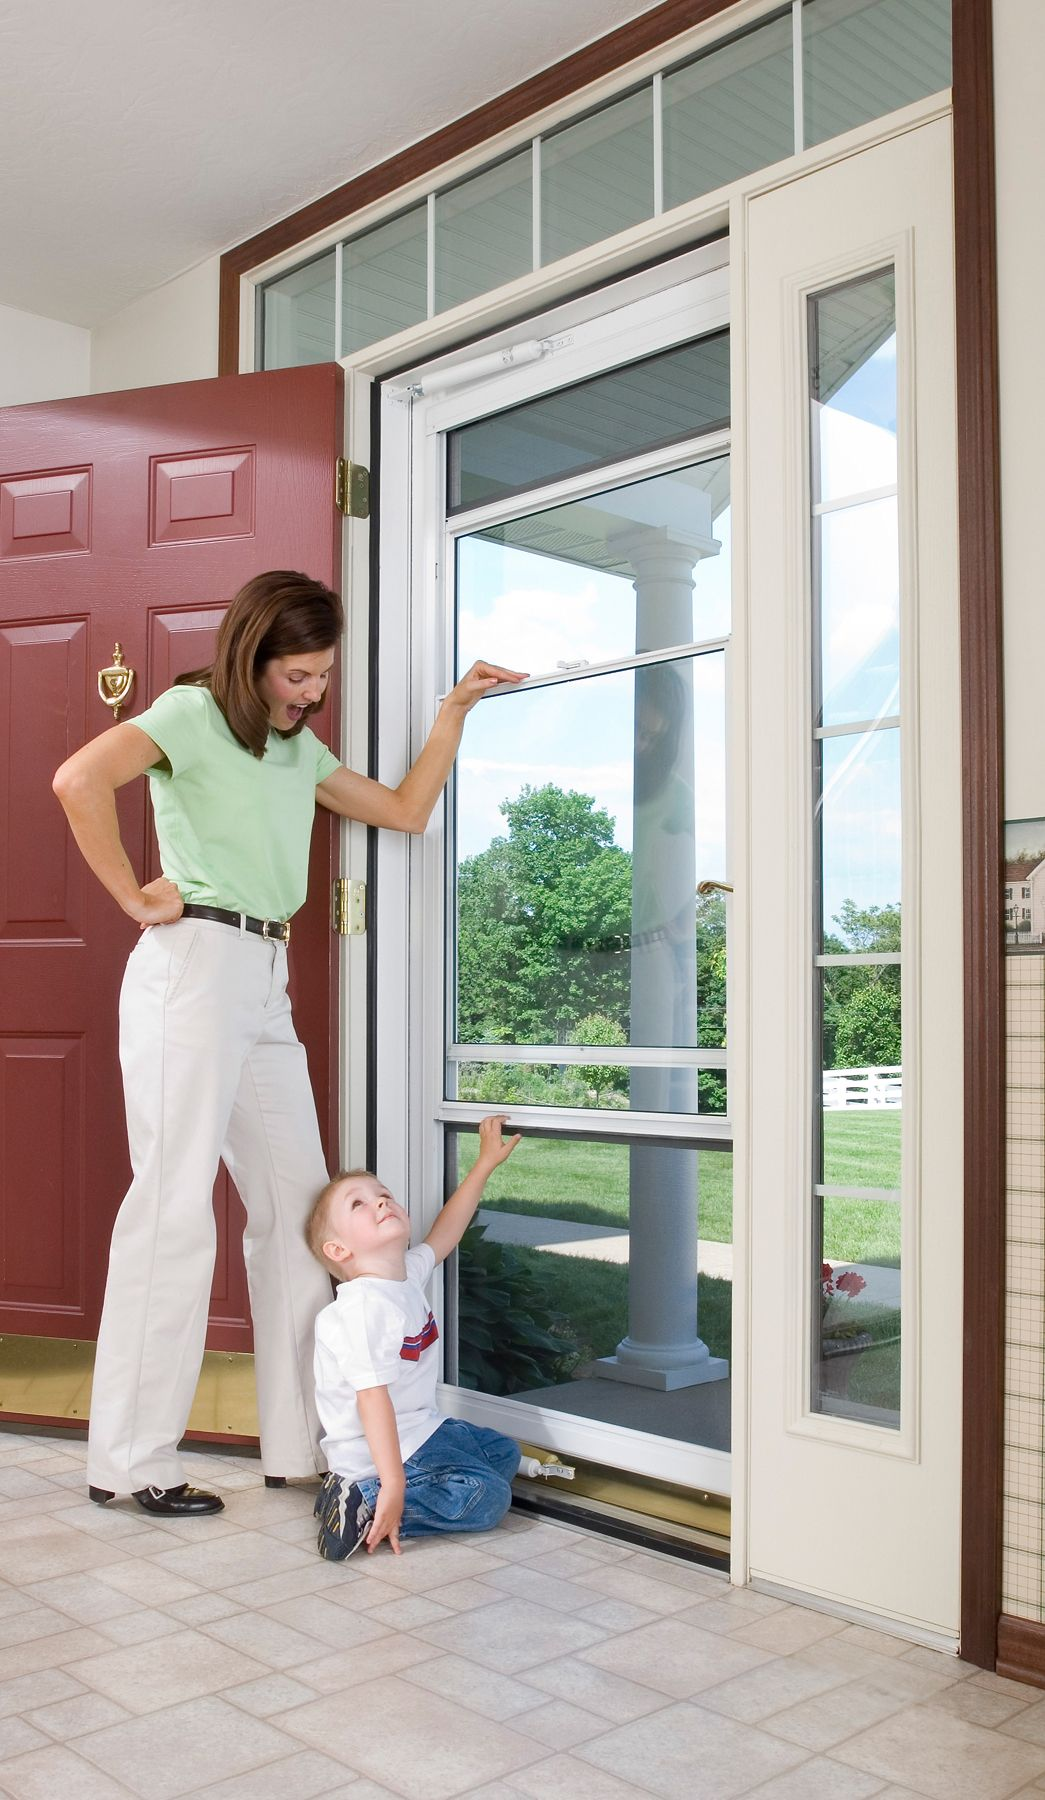 Having A Provia Spectrum Storm Door Installed On Your Home Allows